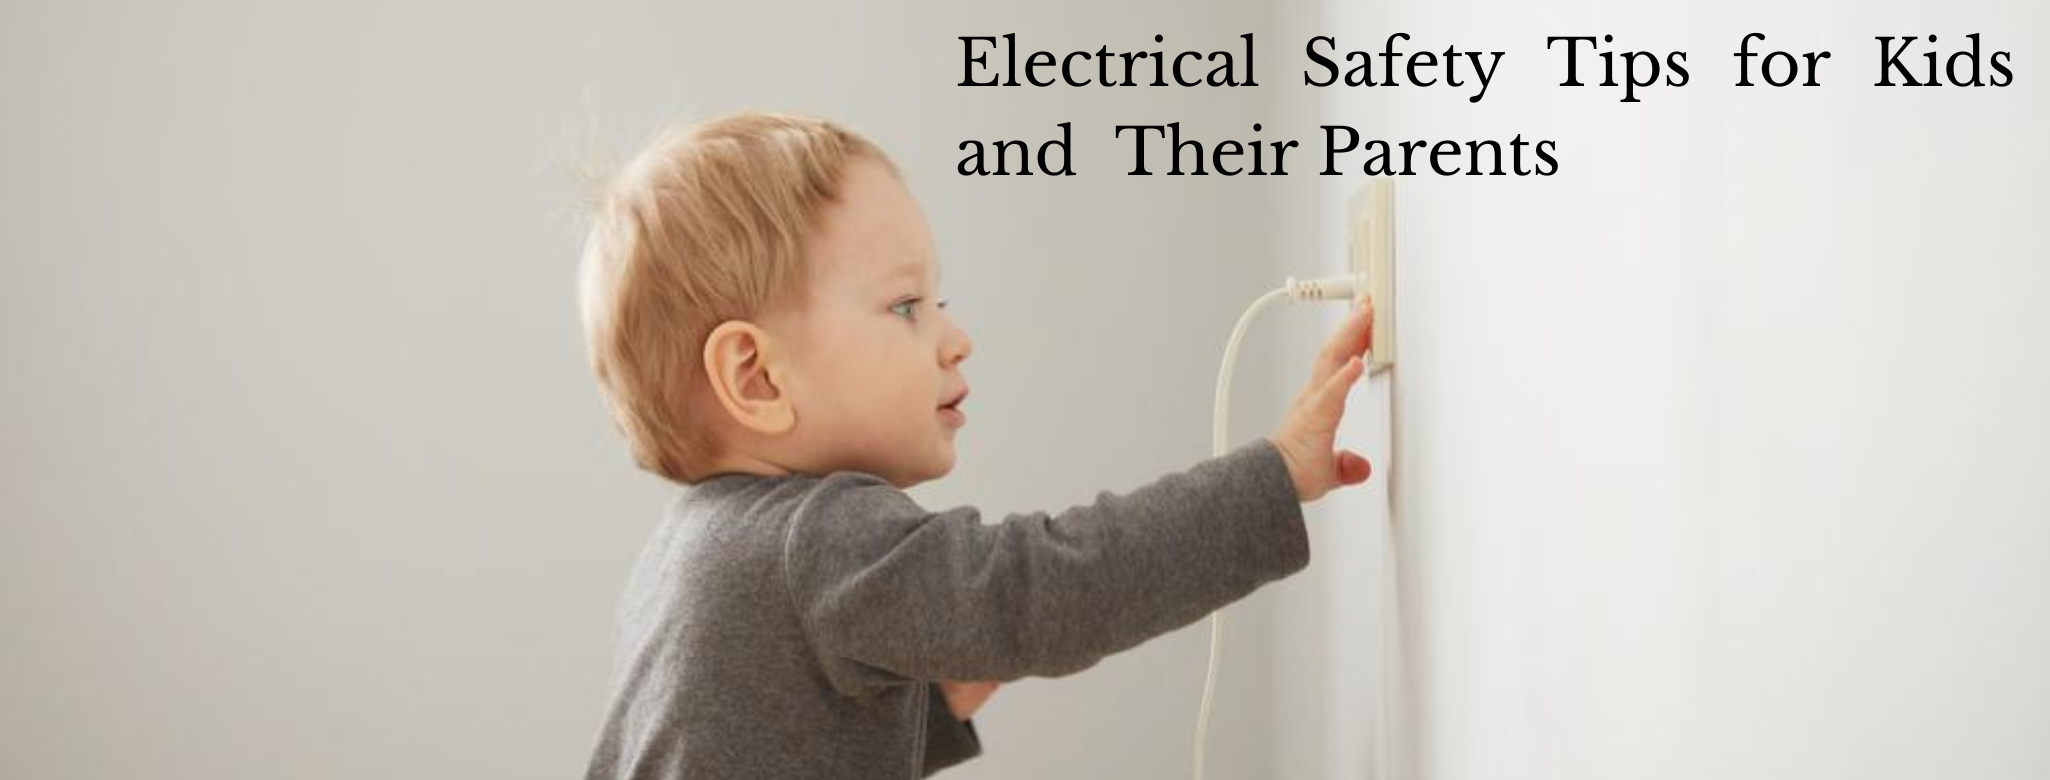 Electrical Safety Tips for Kids and Their Parents